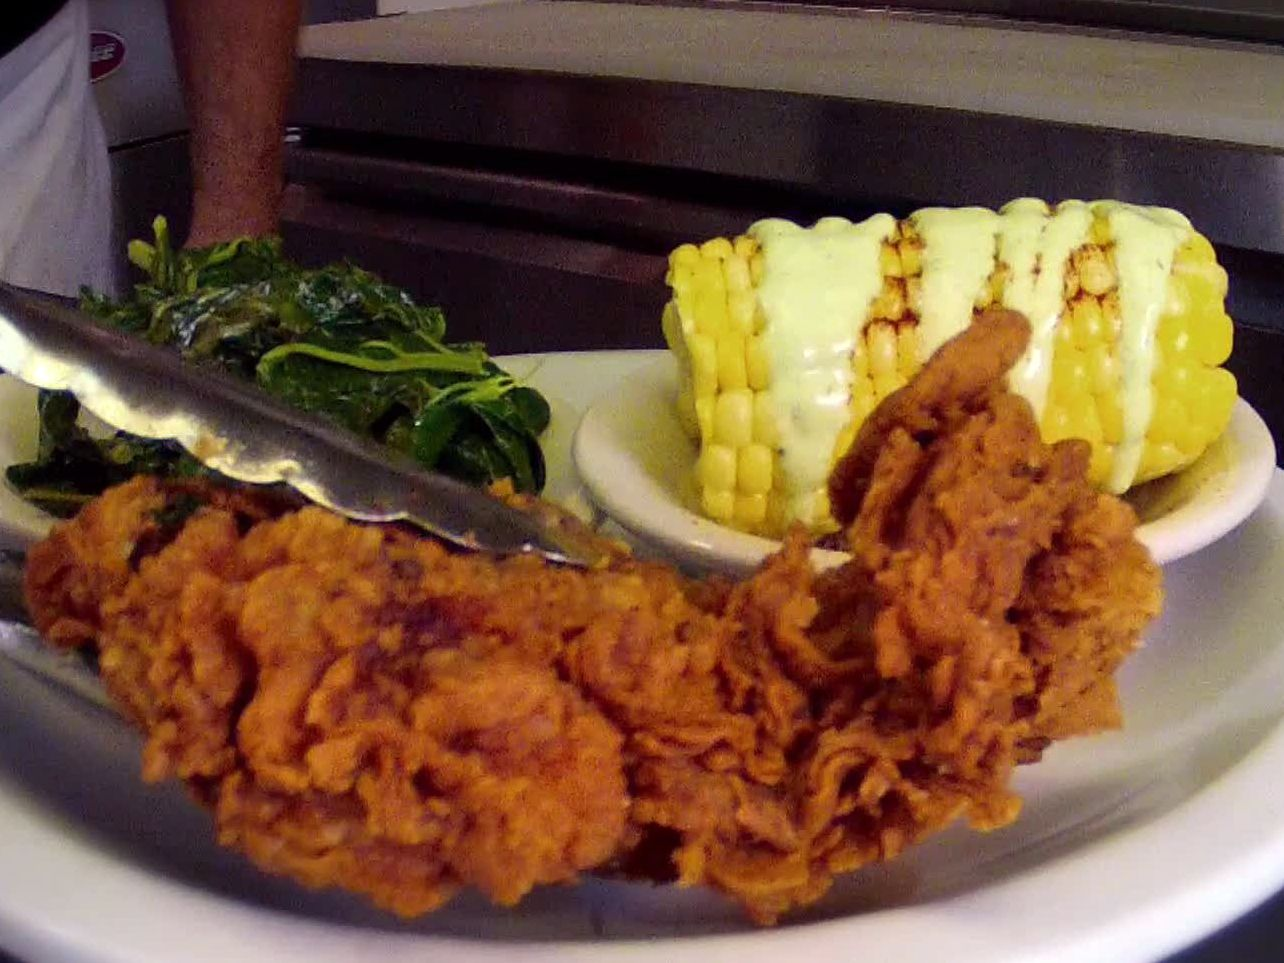 Fried chicken recipe recipes fried chicken recipes and fried chicken recipes food network forumfinder Gallery